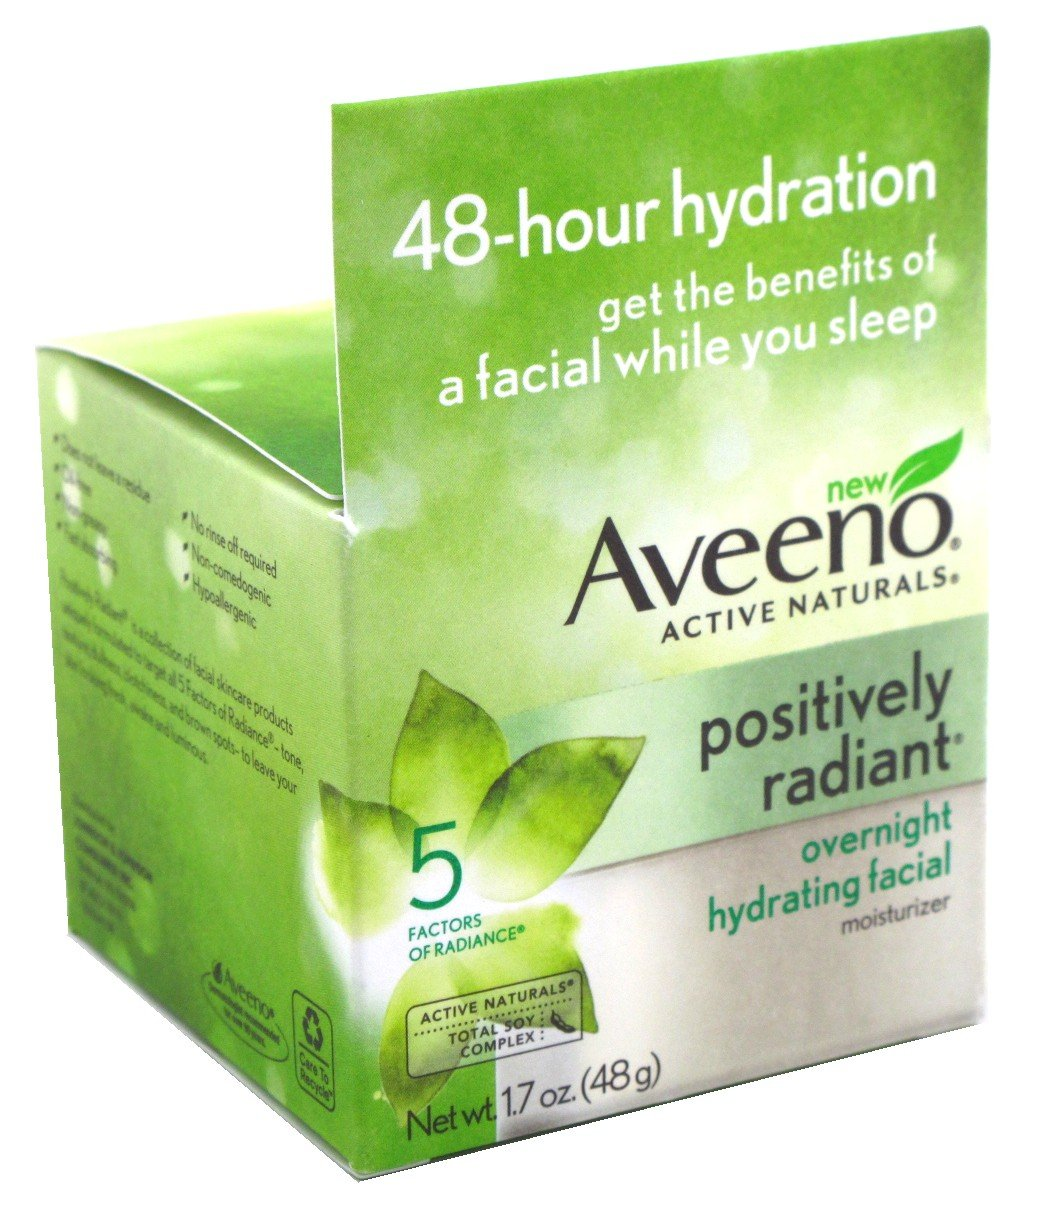 Aveeno Positively Radiant Overnight Facial Moistzr 1.7 Ounce (50ml) (3 Pack)